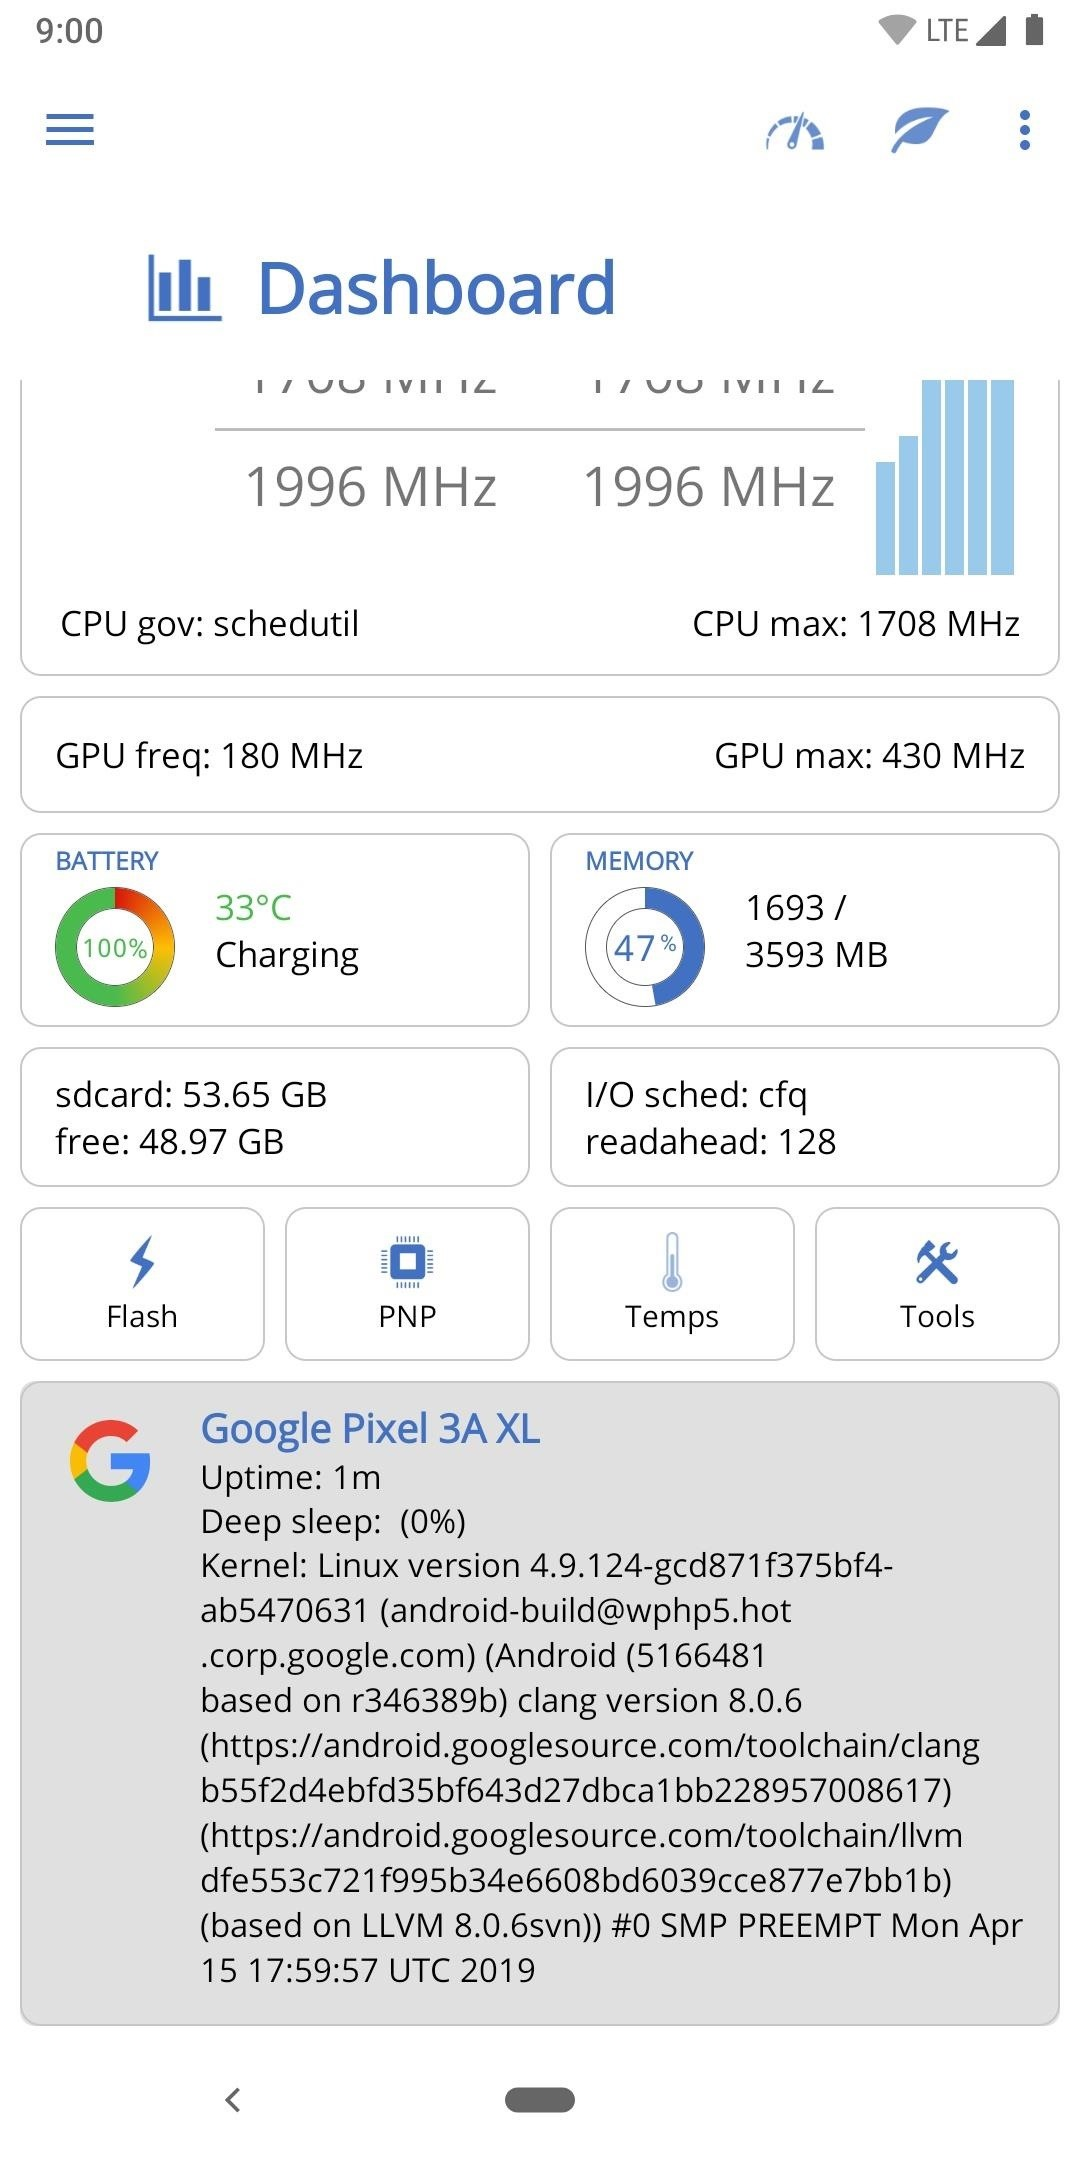 How to Install the ElementalX Custom Kernel on Your Pixel 3a